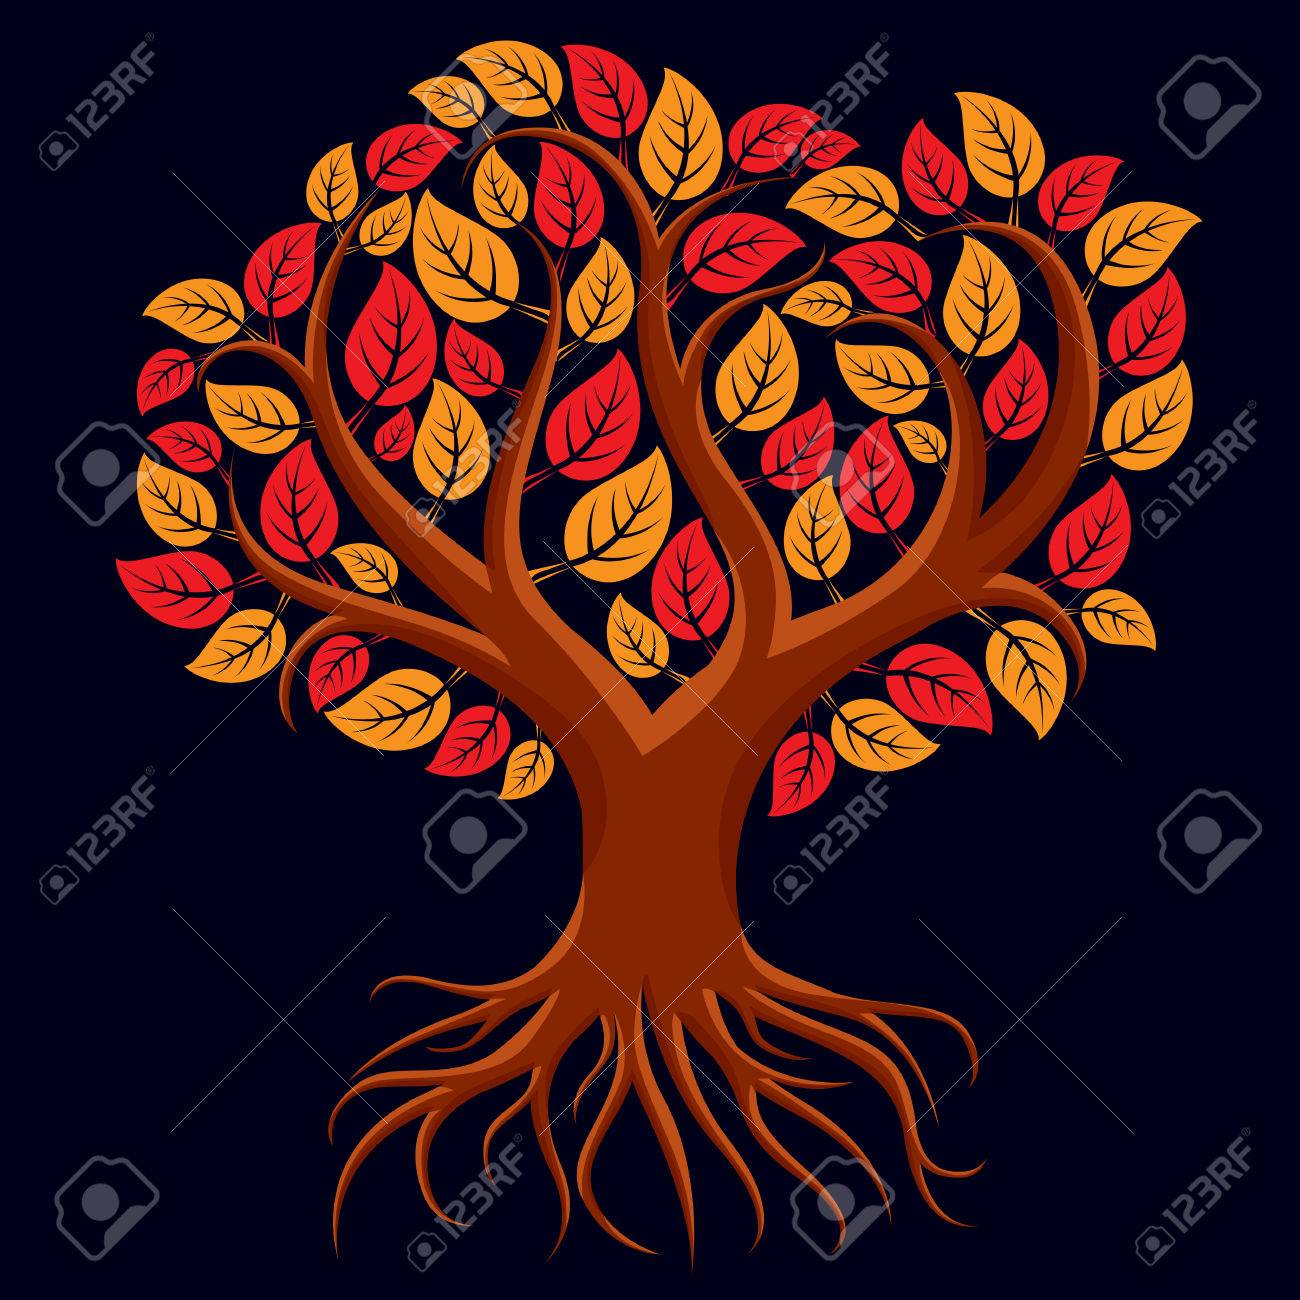 vector art illustration of branchy tree with strong roots tree